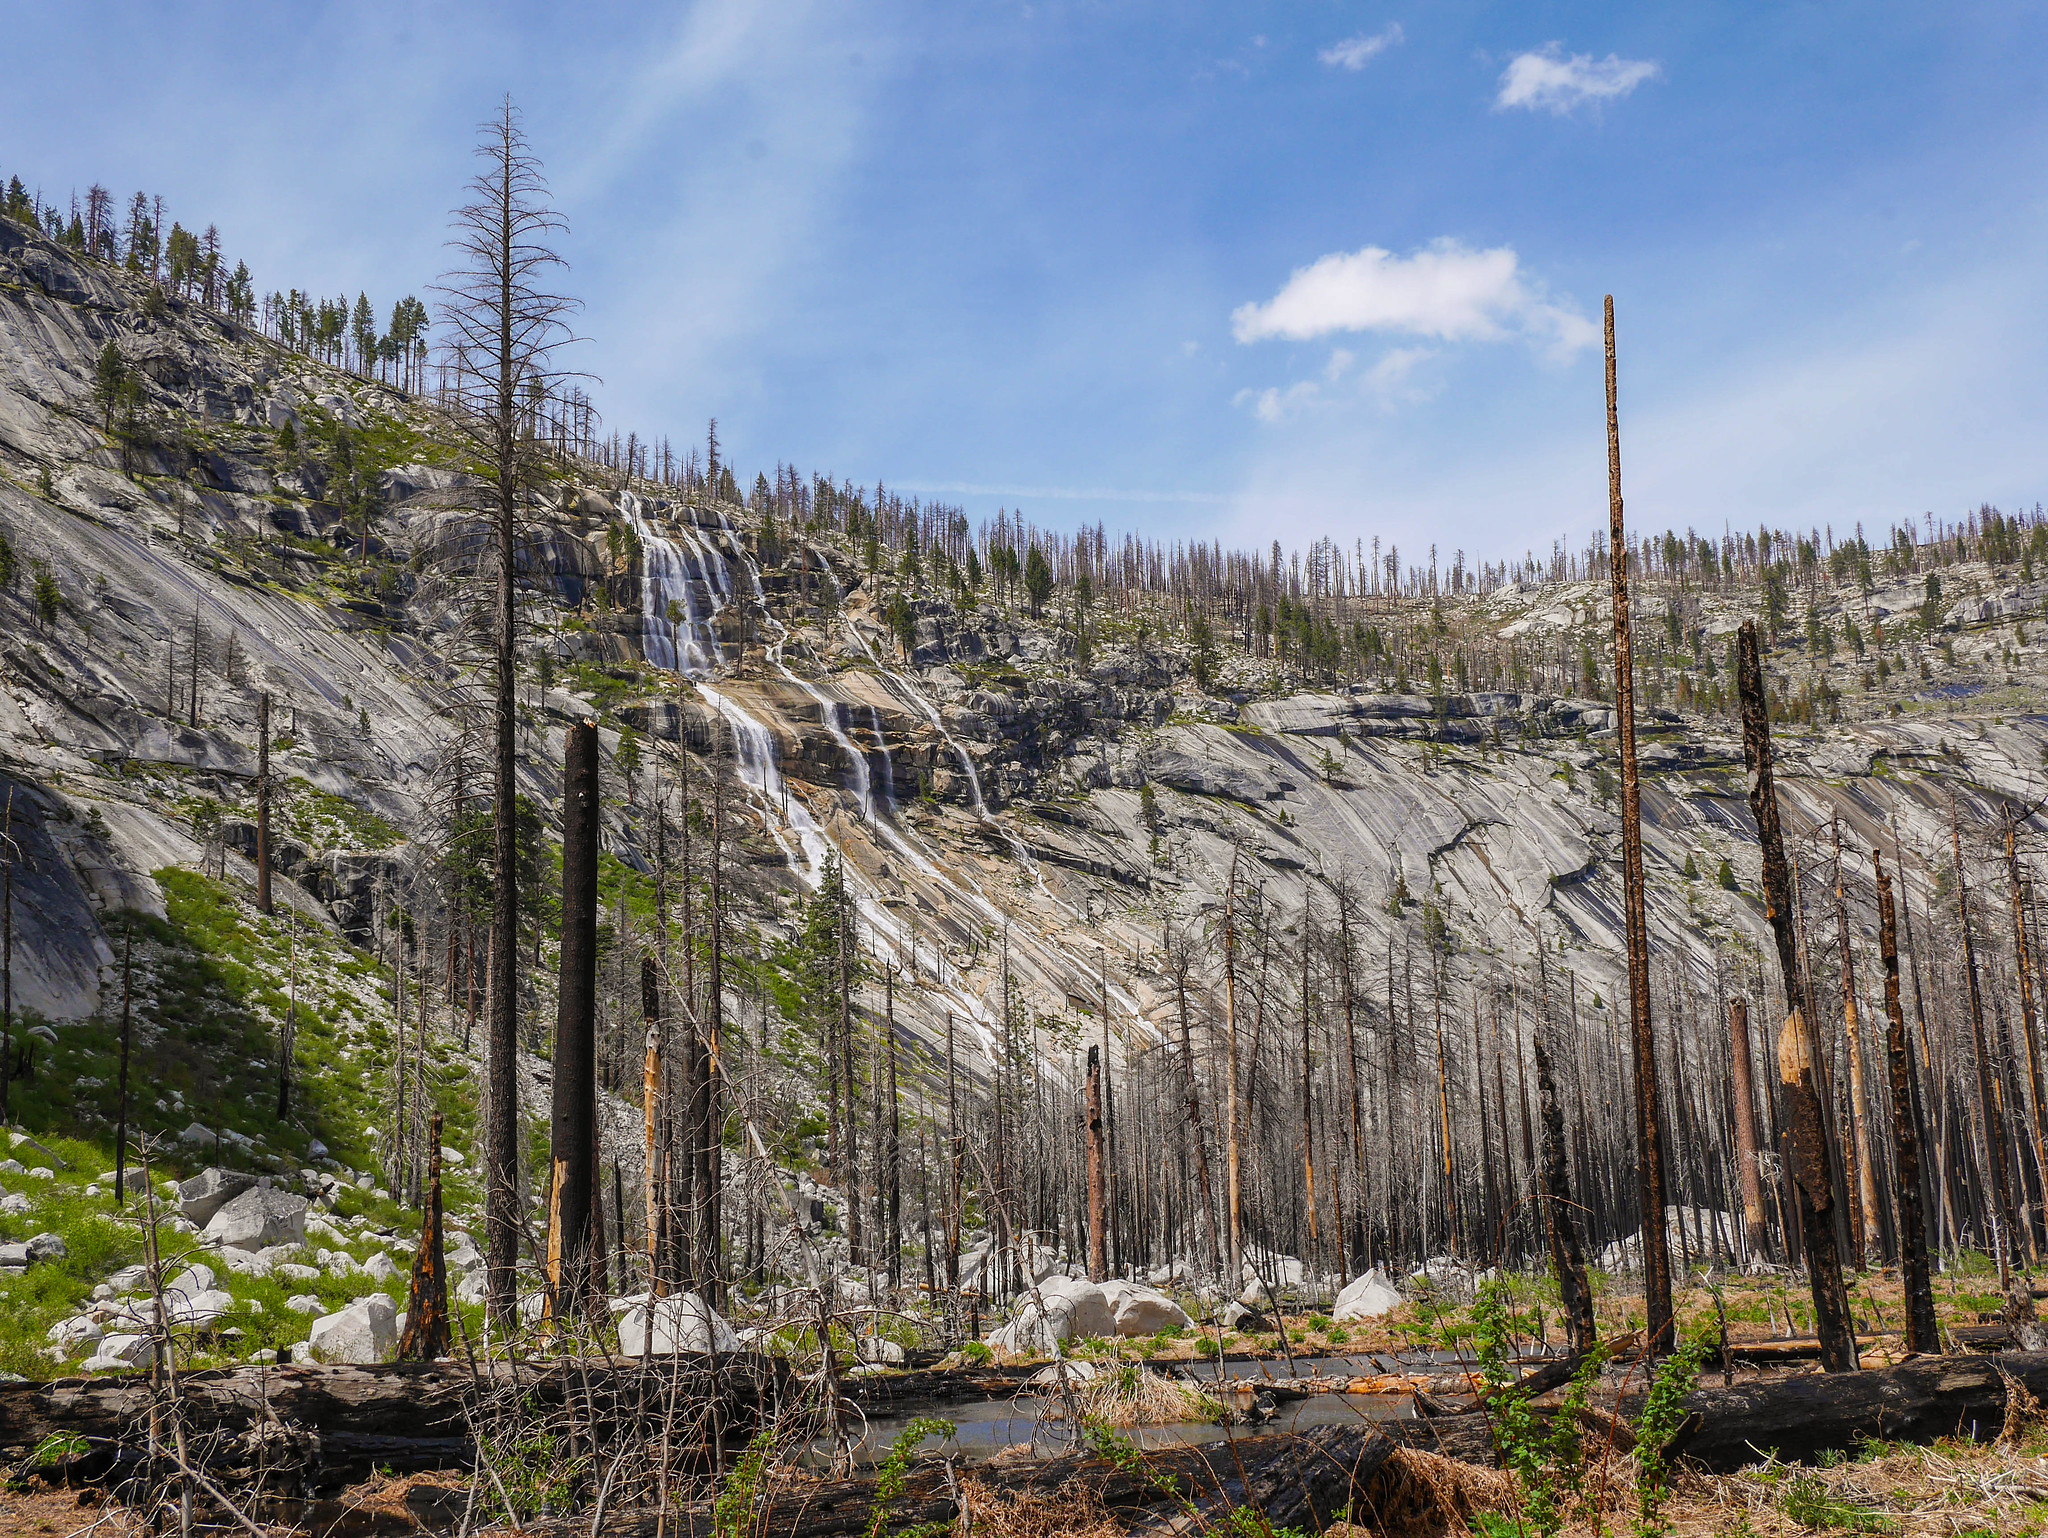 Burned areas in Little Yosemite Valley are somewhat apocalyptic but let you see the canyon